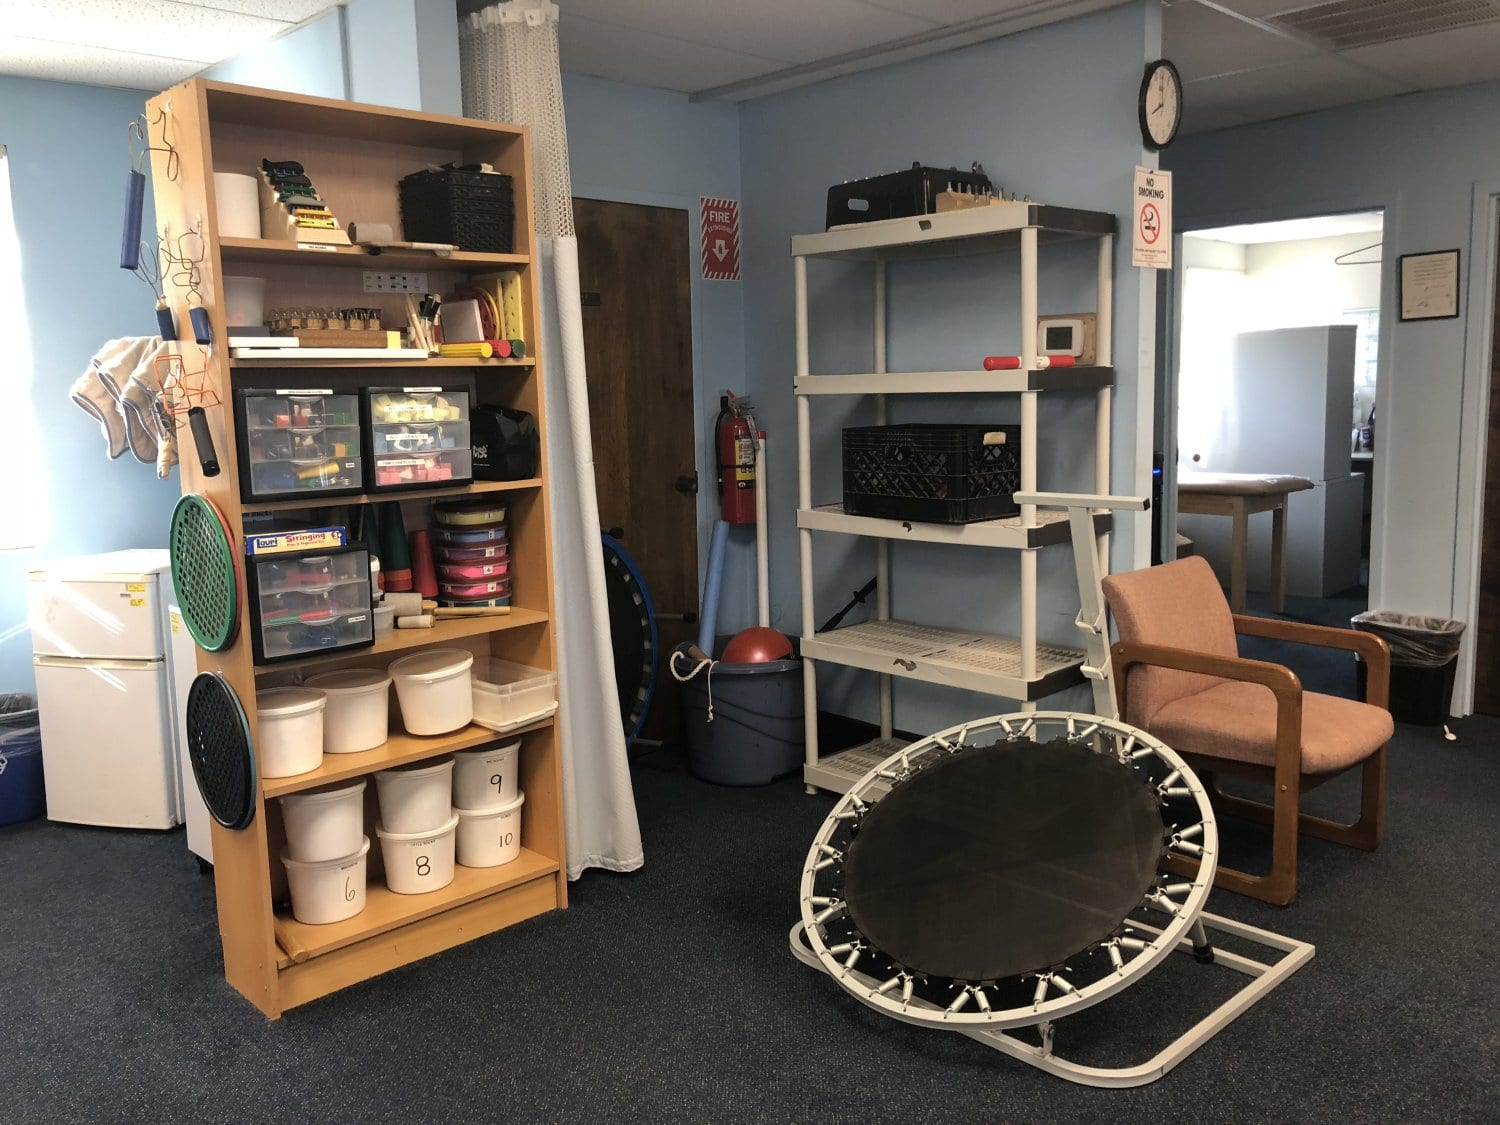 Here is an image of the interior of our Union, New Jersey physical therapy clinic.